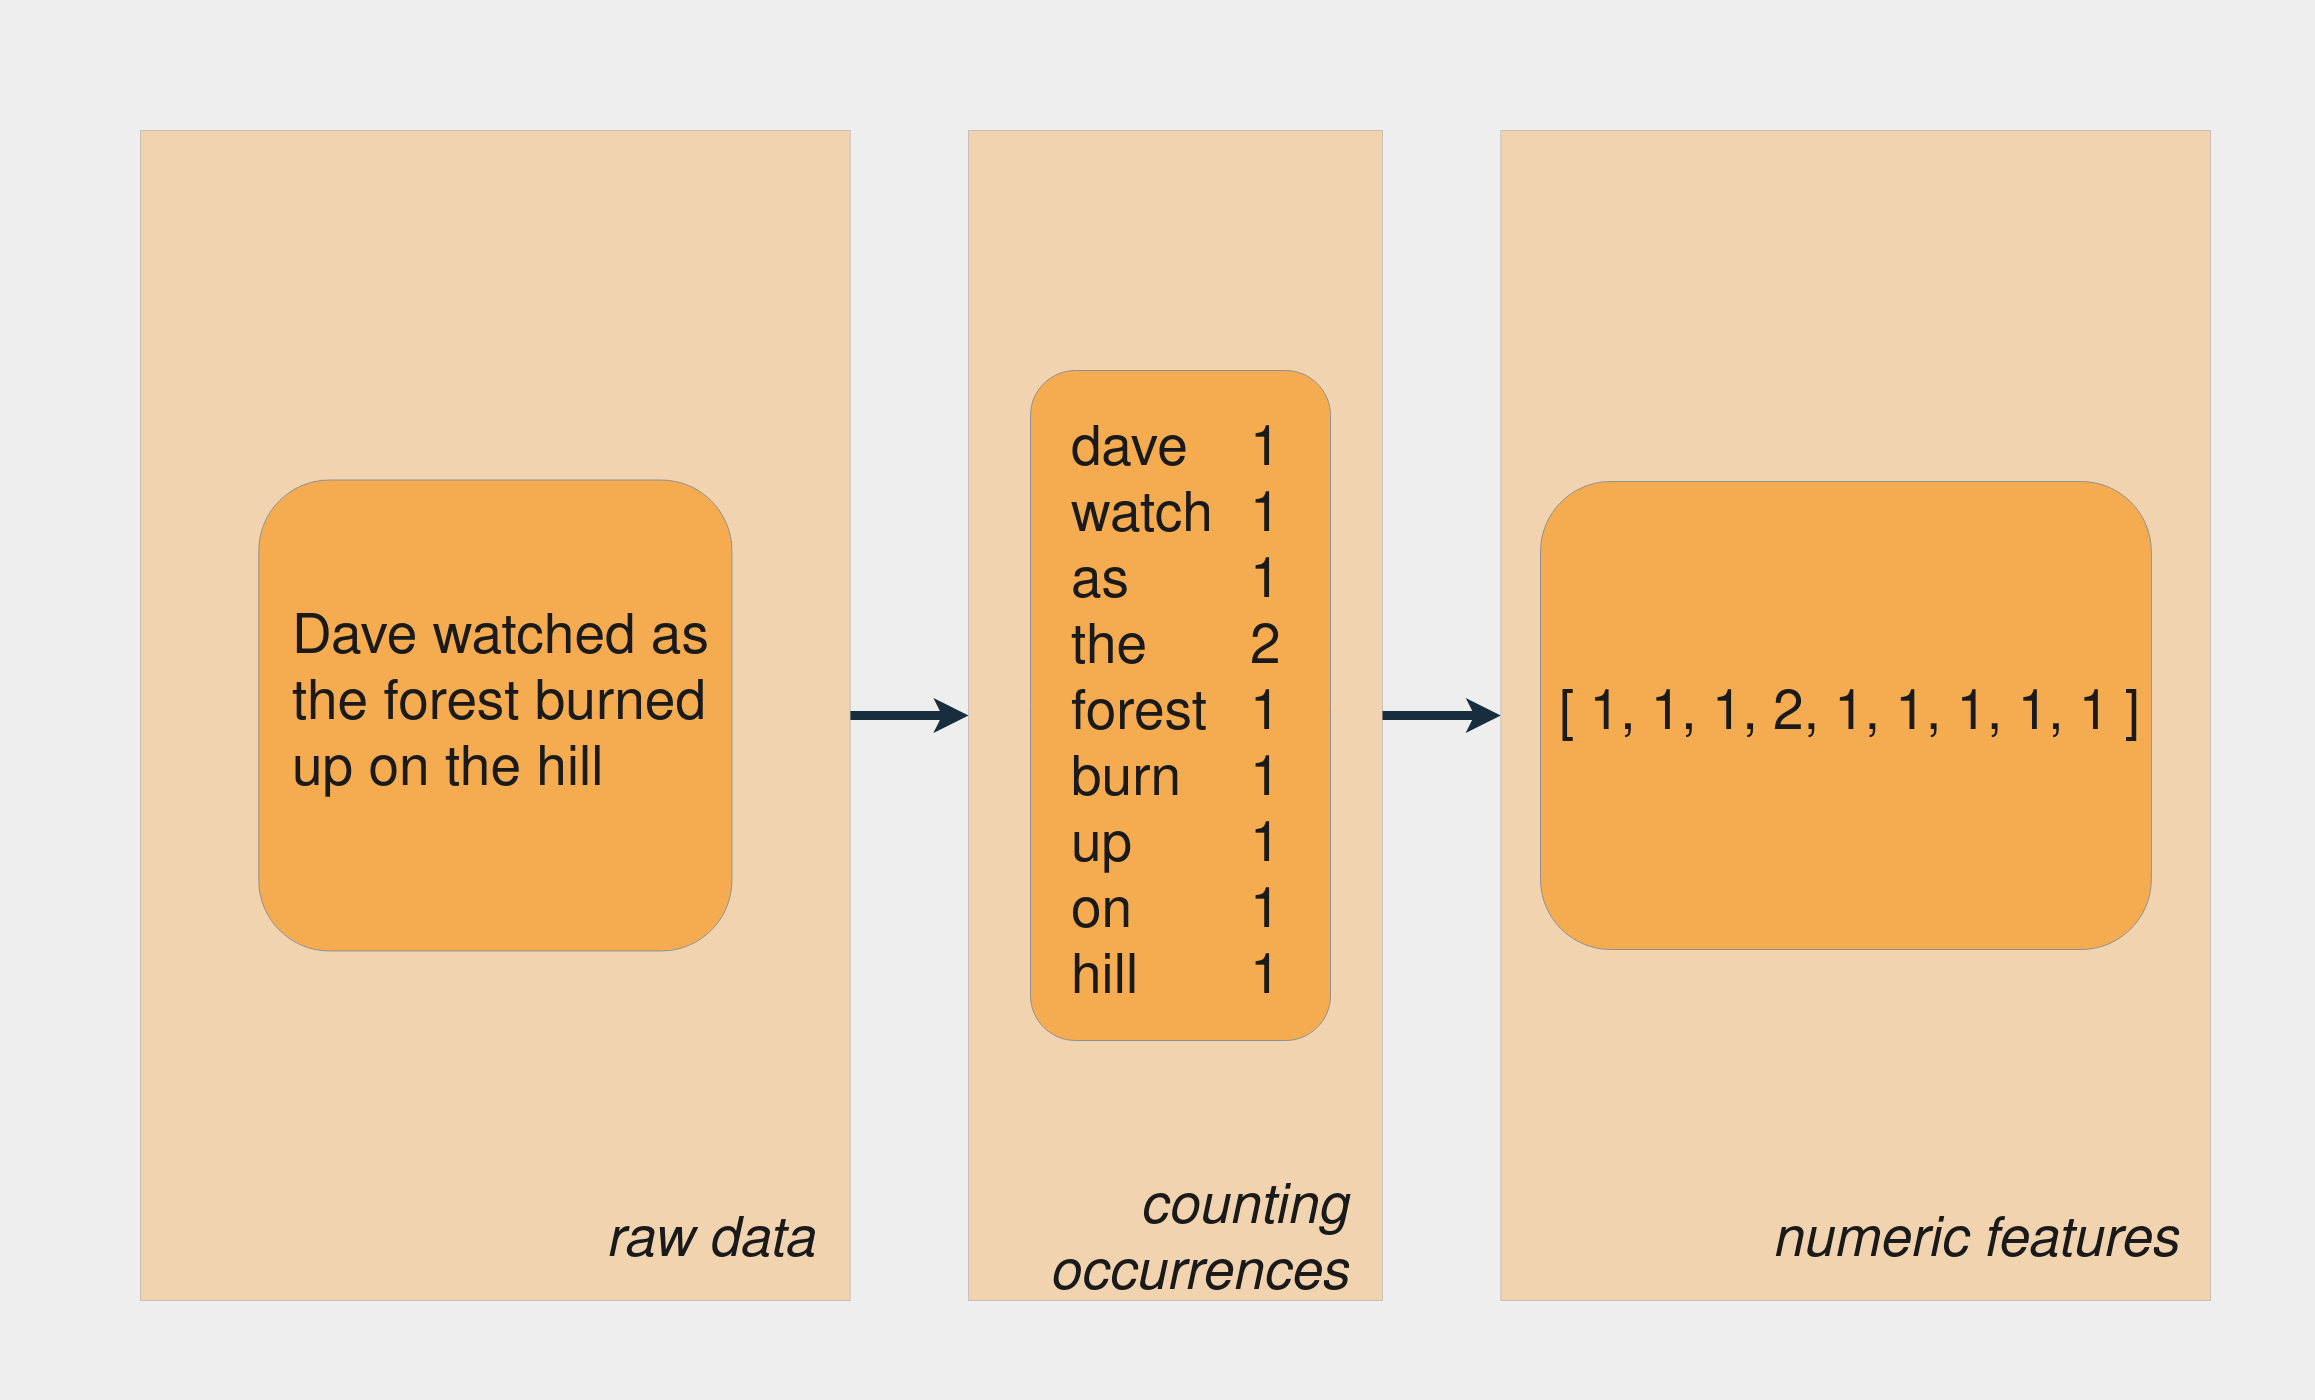 Feature engineering from text to numeric array